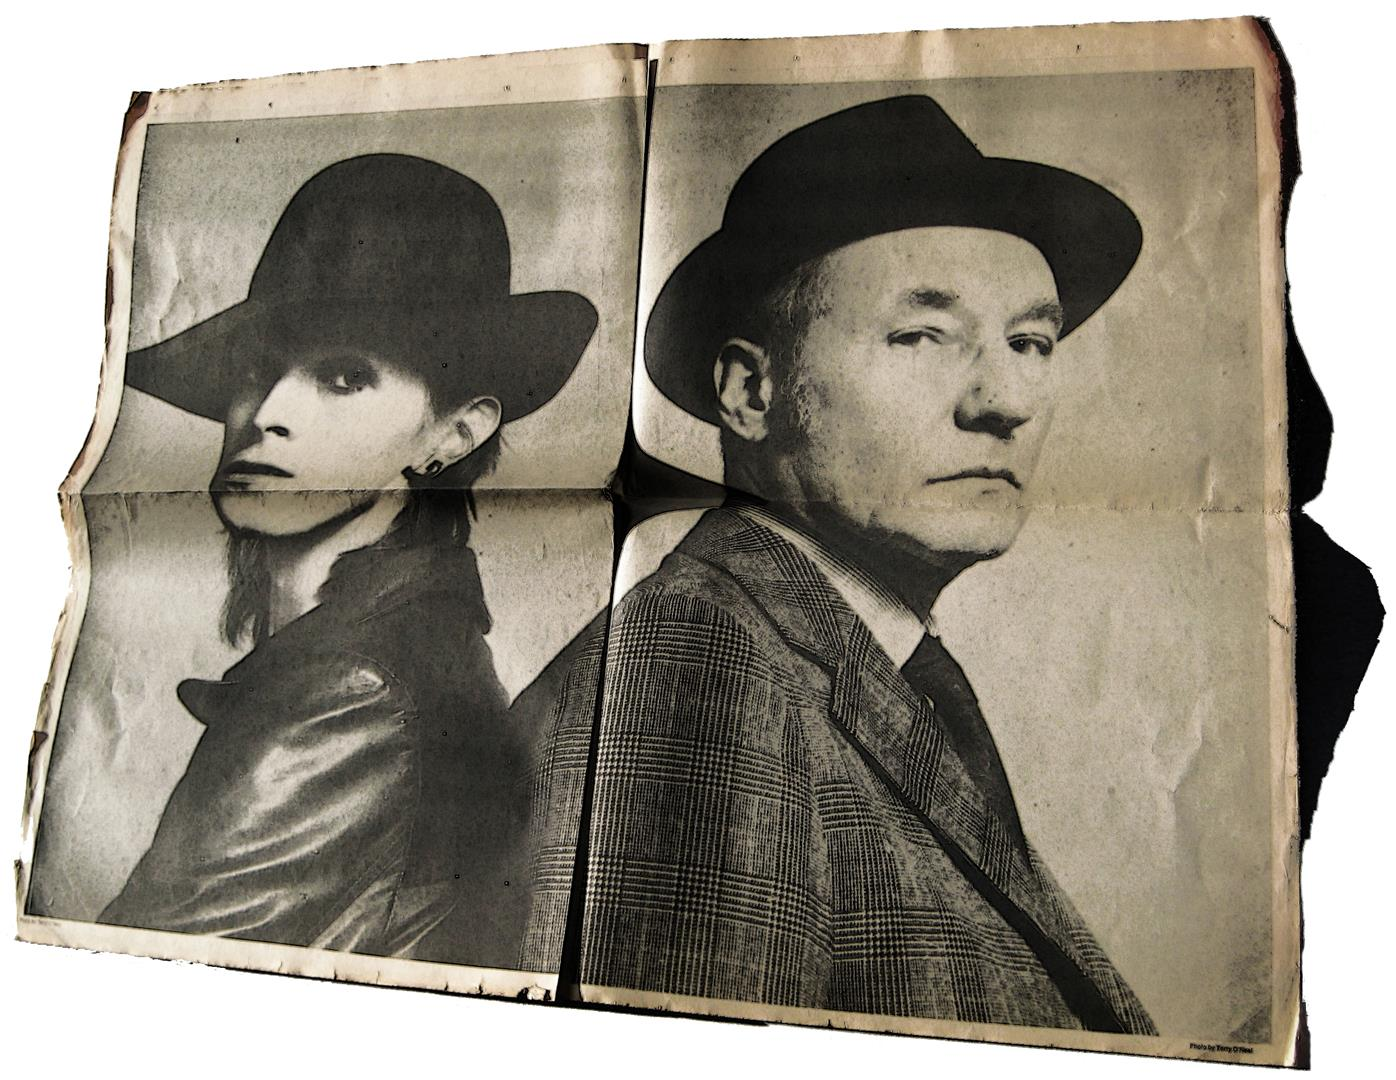 David Bowie, William S. Burroughs, Photo by Terry O'Neal, tour magazine 1976 Station to Station